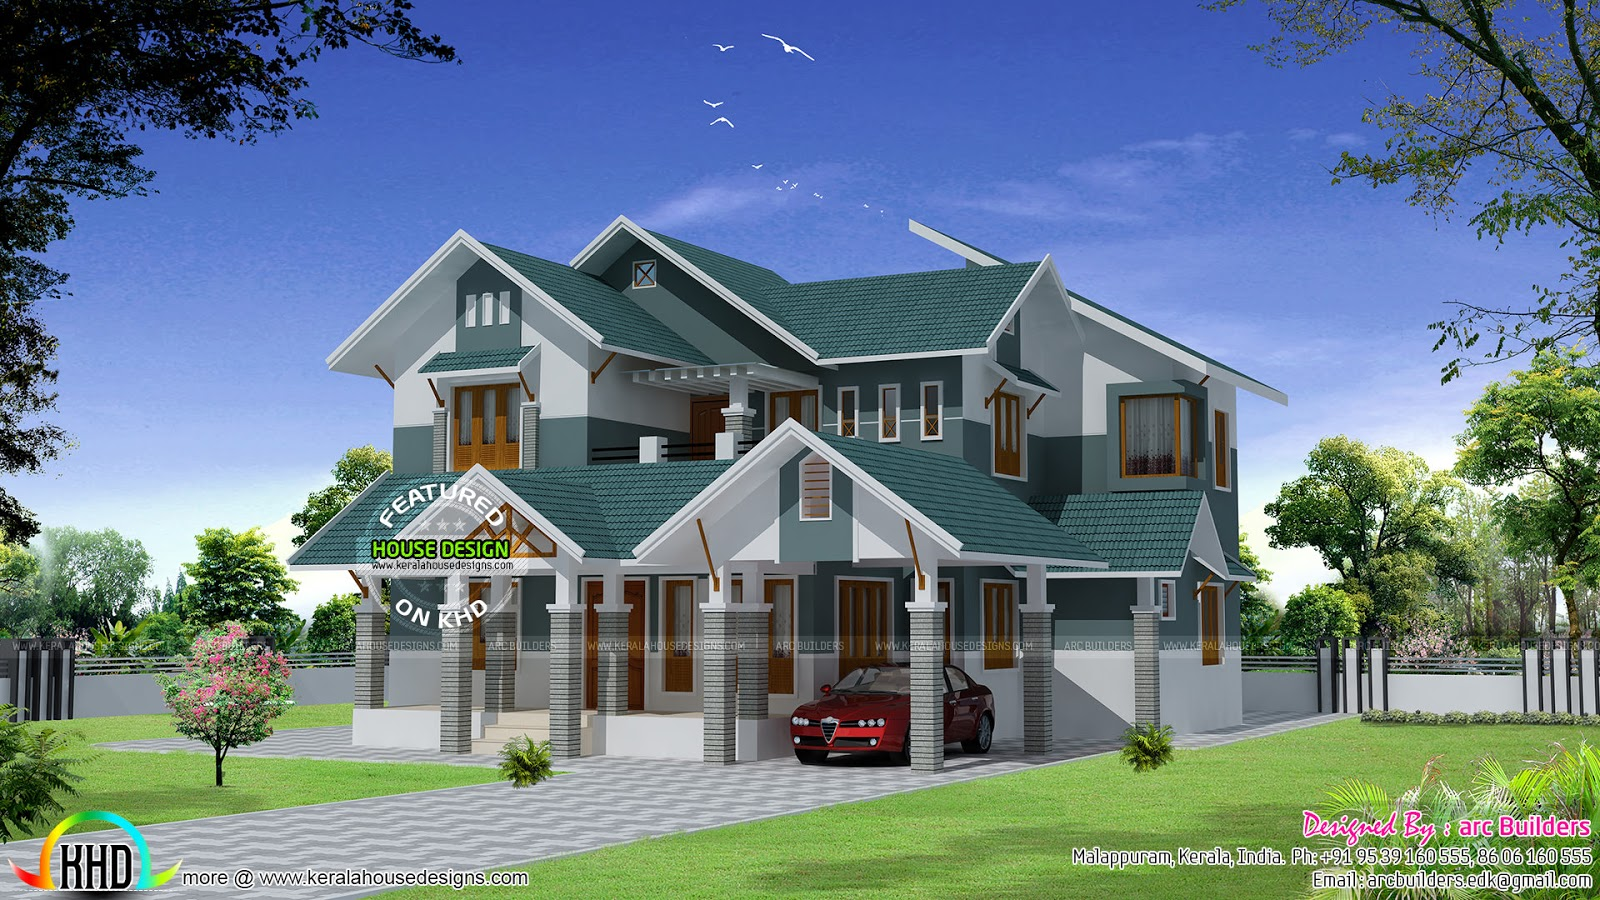 Sloping roof modern home design kerala home design and for Modern kerala style house plans with photos